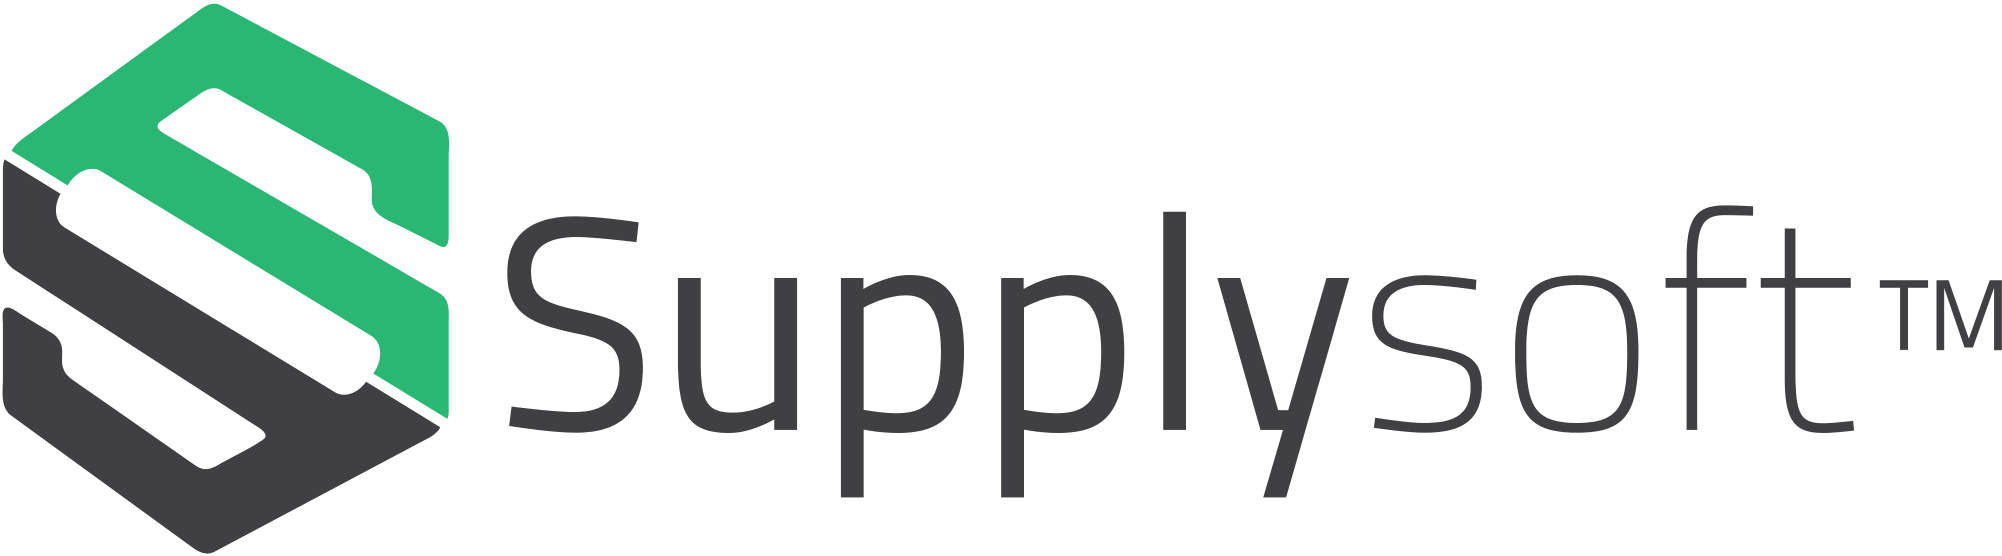 SupplySoft